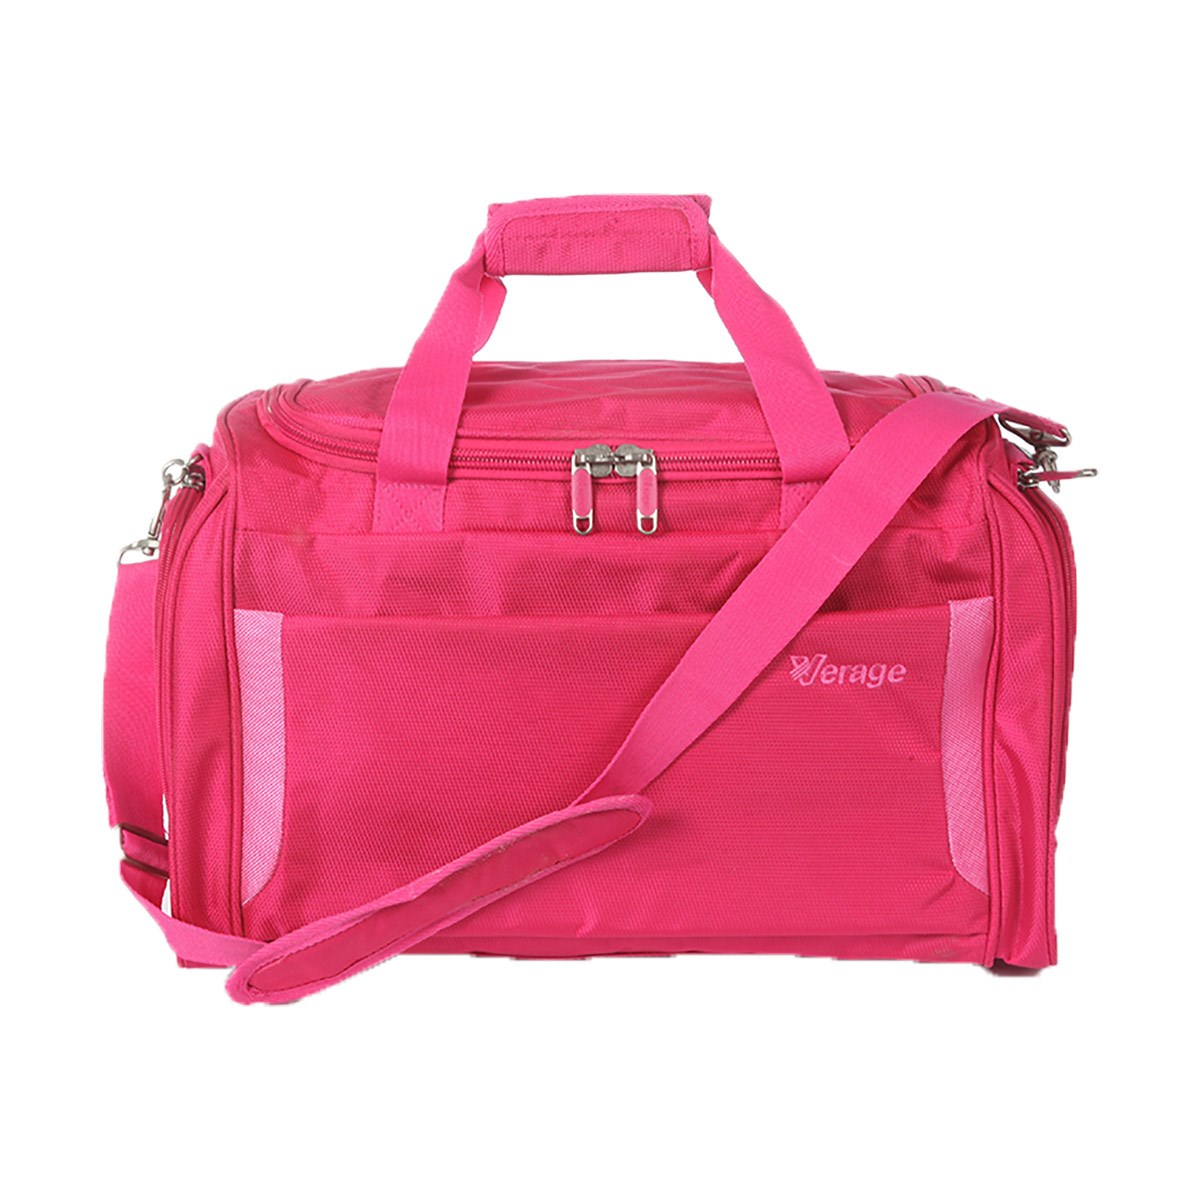 Travel Bag Verage GM11015-4A 16 Pink elegant business men toiletry bag travel organizer cosmetic bag necessaries